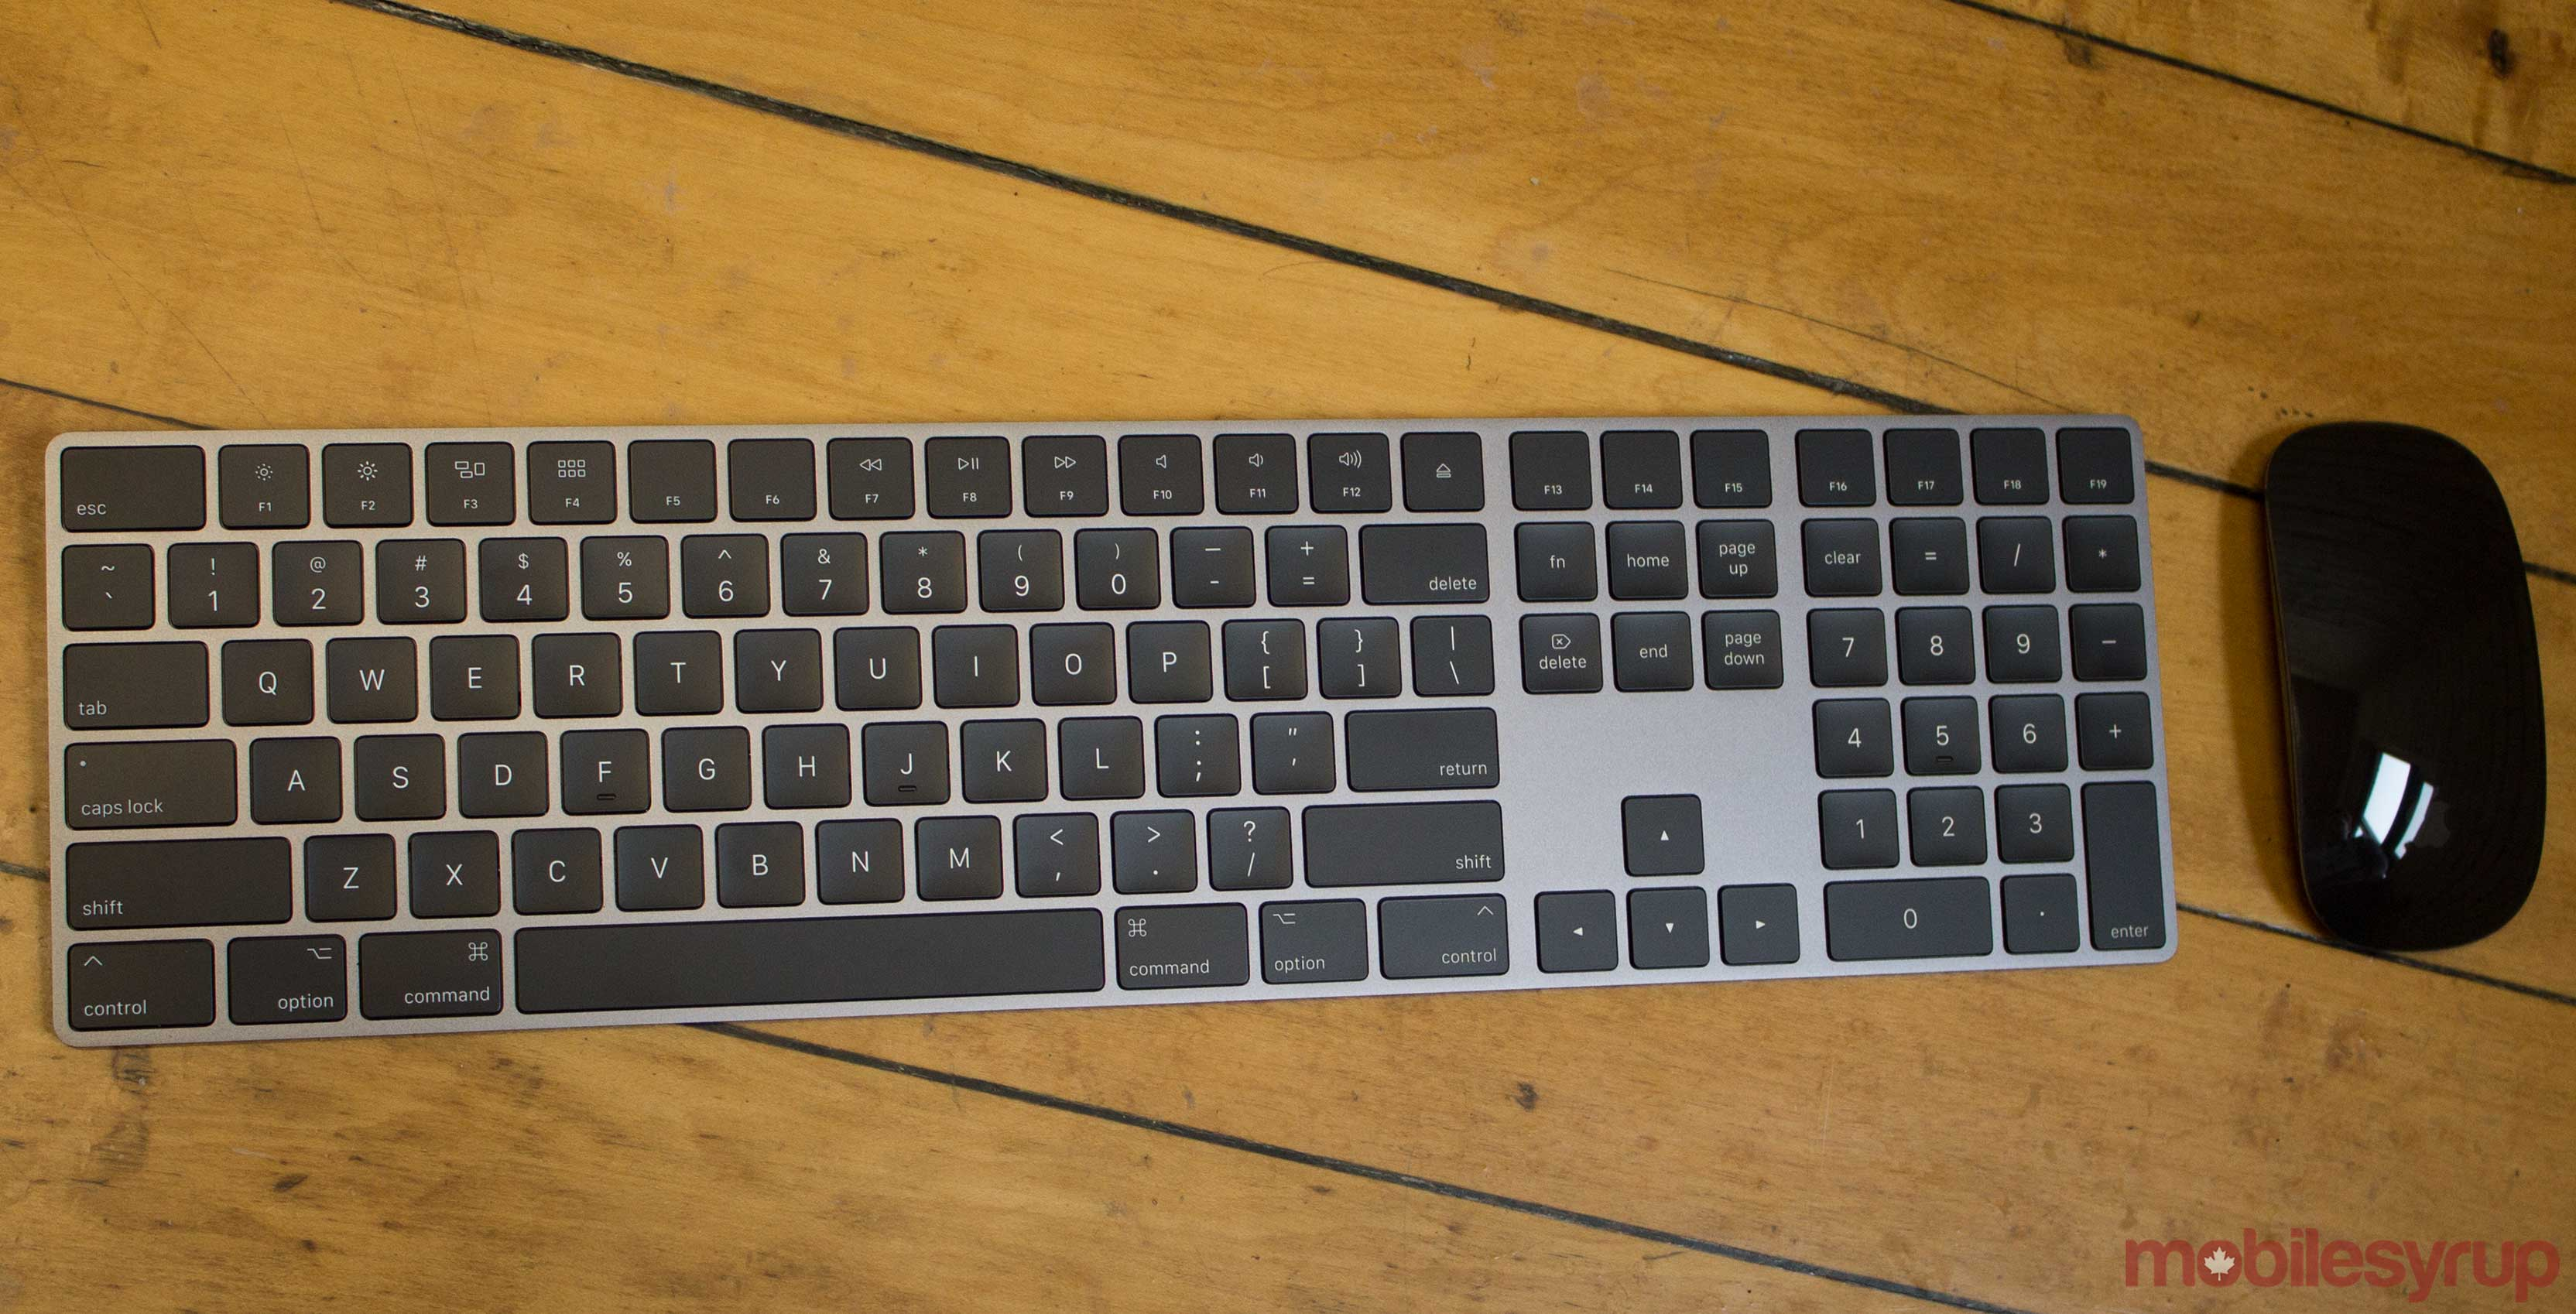 df4429180a5 When Apple launched the iMac Pro at the end of 2017, many were surprised to  find out that the sleek space grey keyboard, mouse and trackpad that  shipped ...